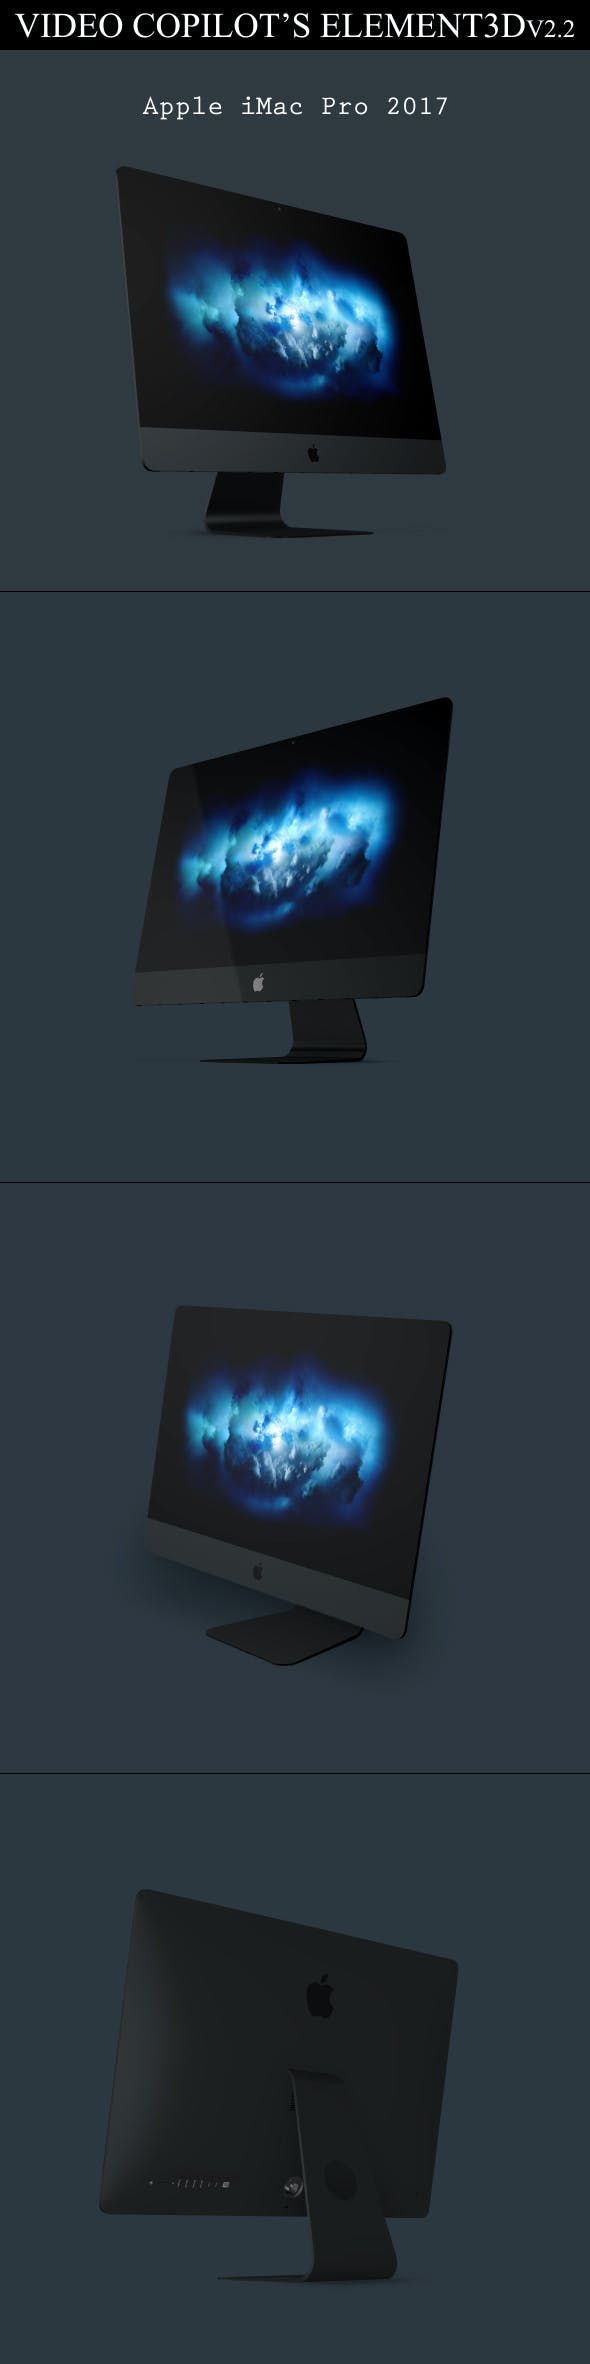 Element3D - iMac Pro 2017 - 3DOcean Item for Sale